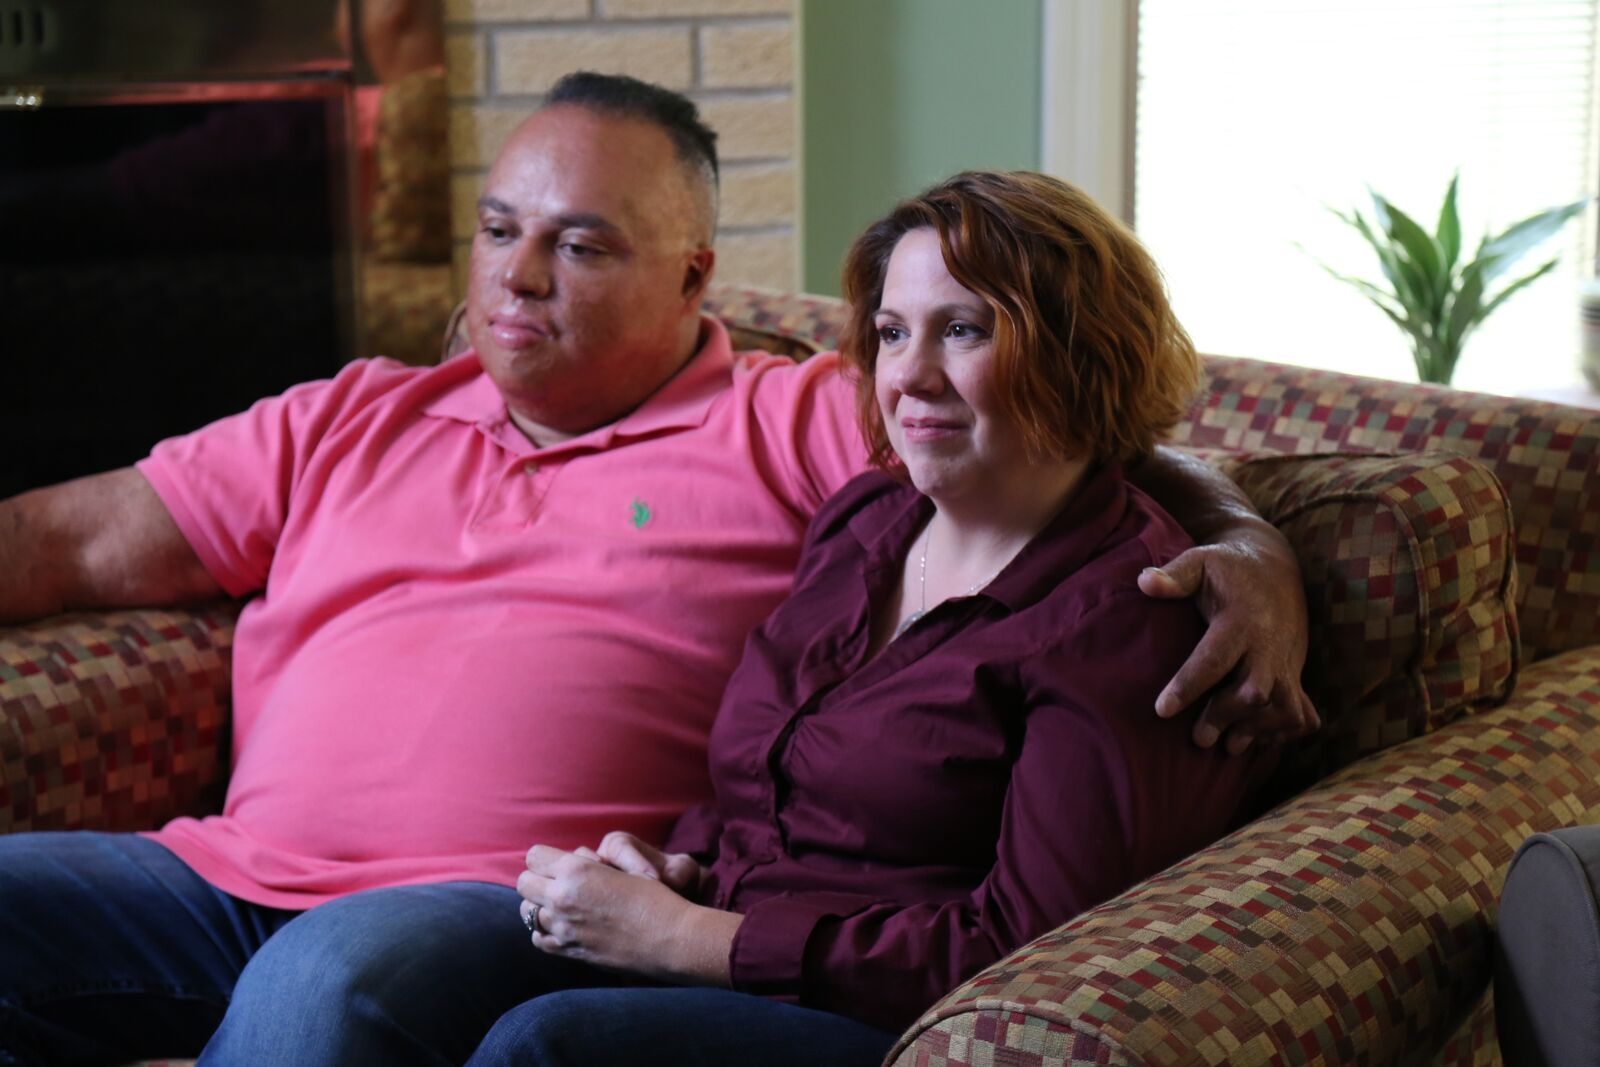 Manny and Laura Gonzalez on loveseat